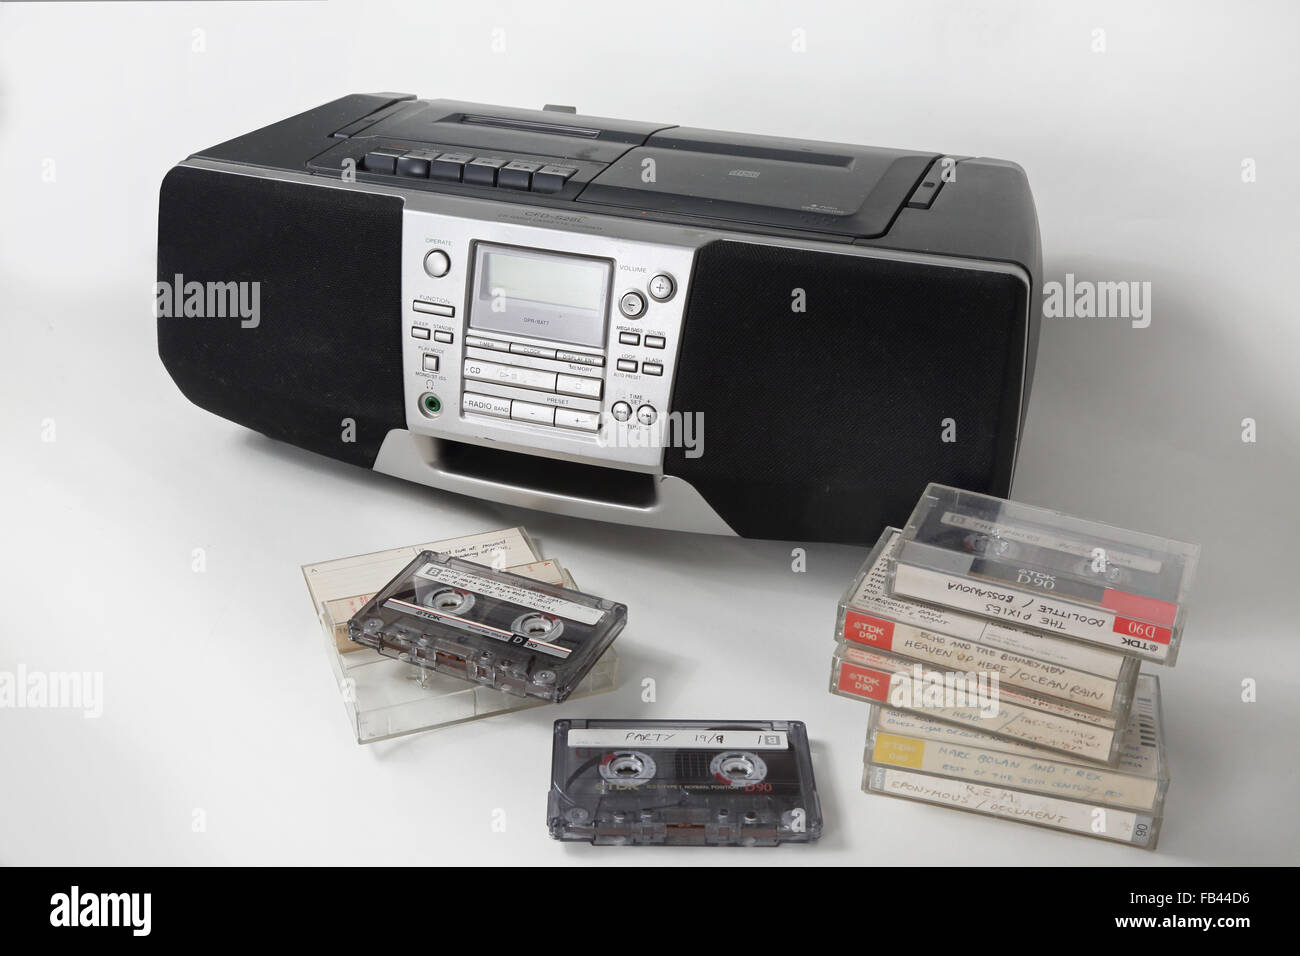 Home recorded cassette tapes stacked up in front of a 1990s style cassette, radio and and CD player - Stock Image